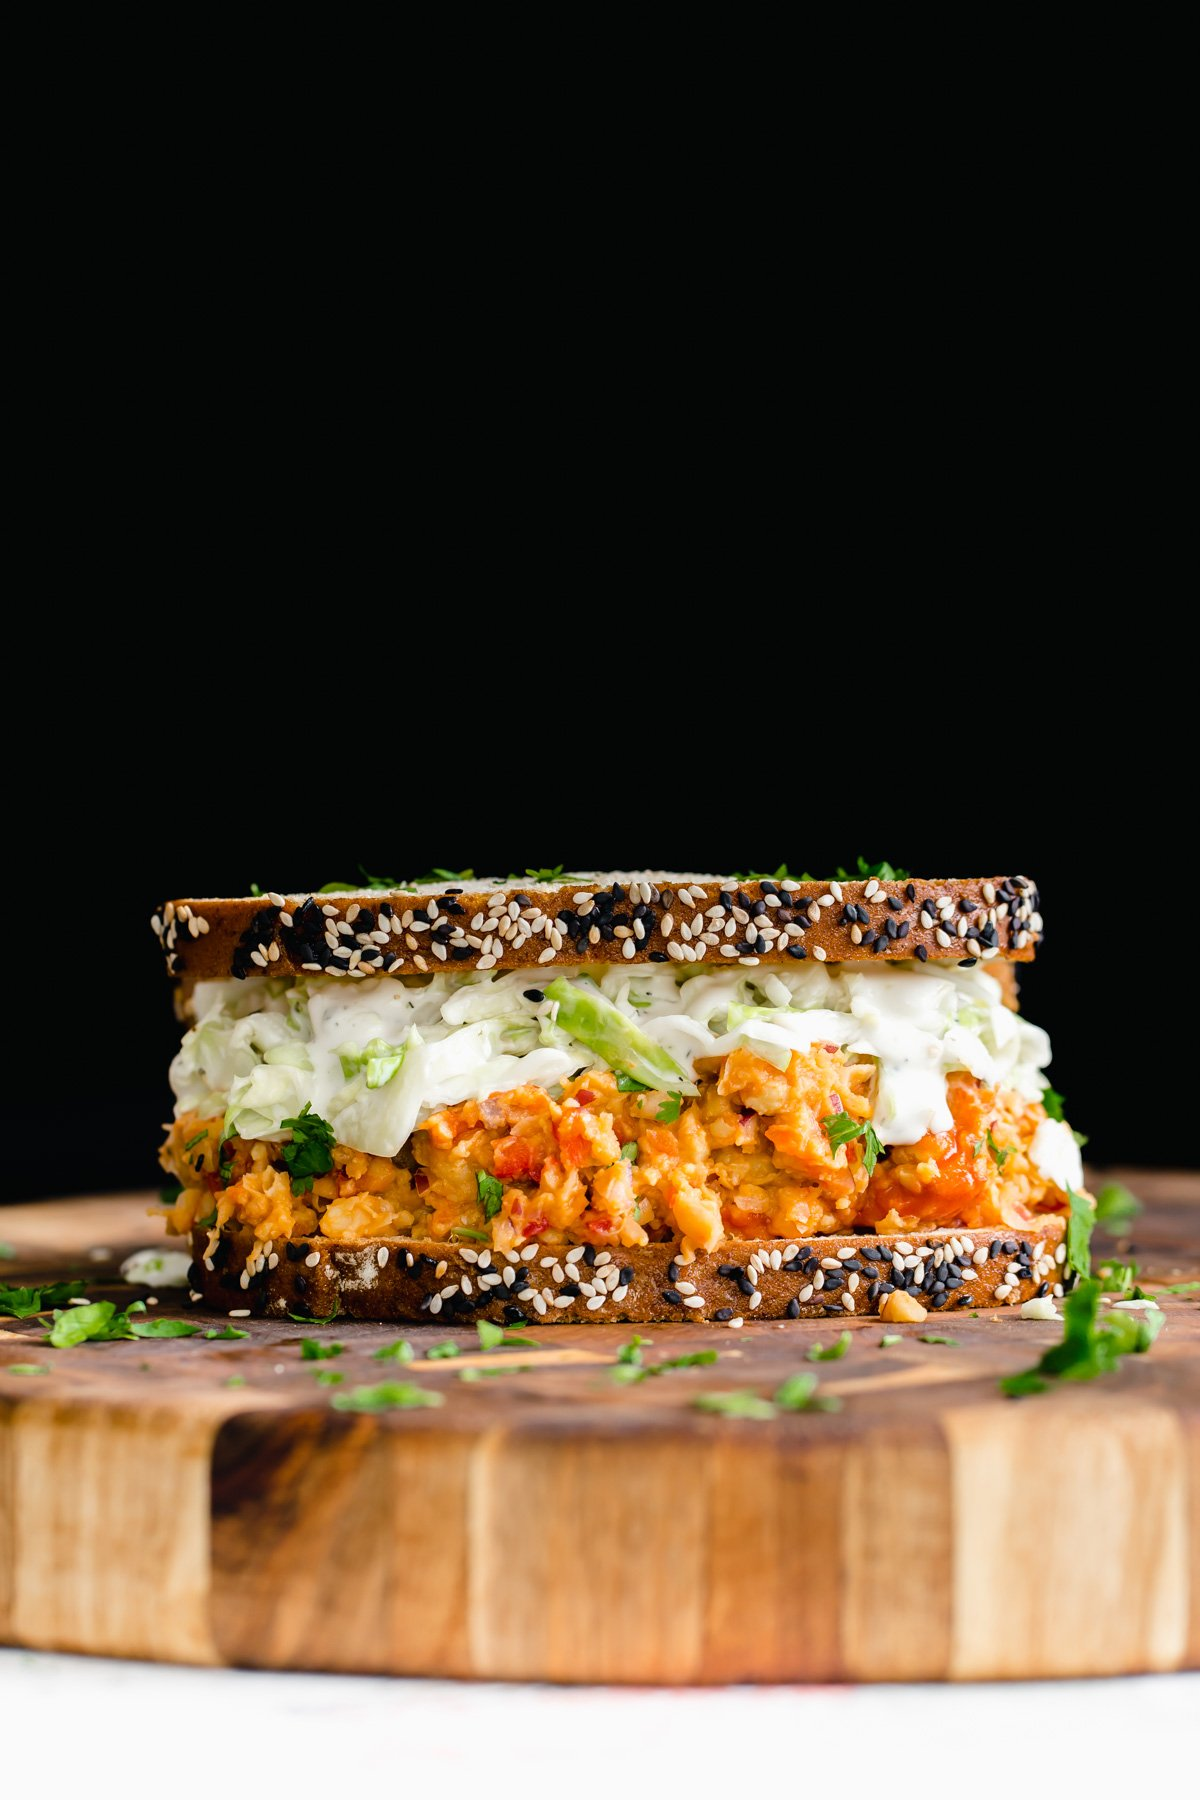 side view of a vegan lunch sandwich with buffalo chickpea salad and slaw